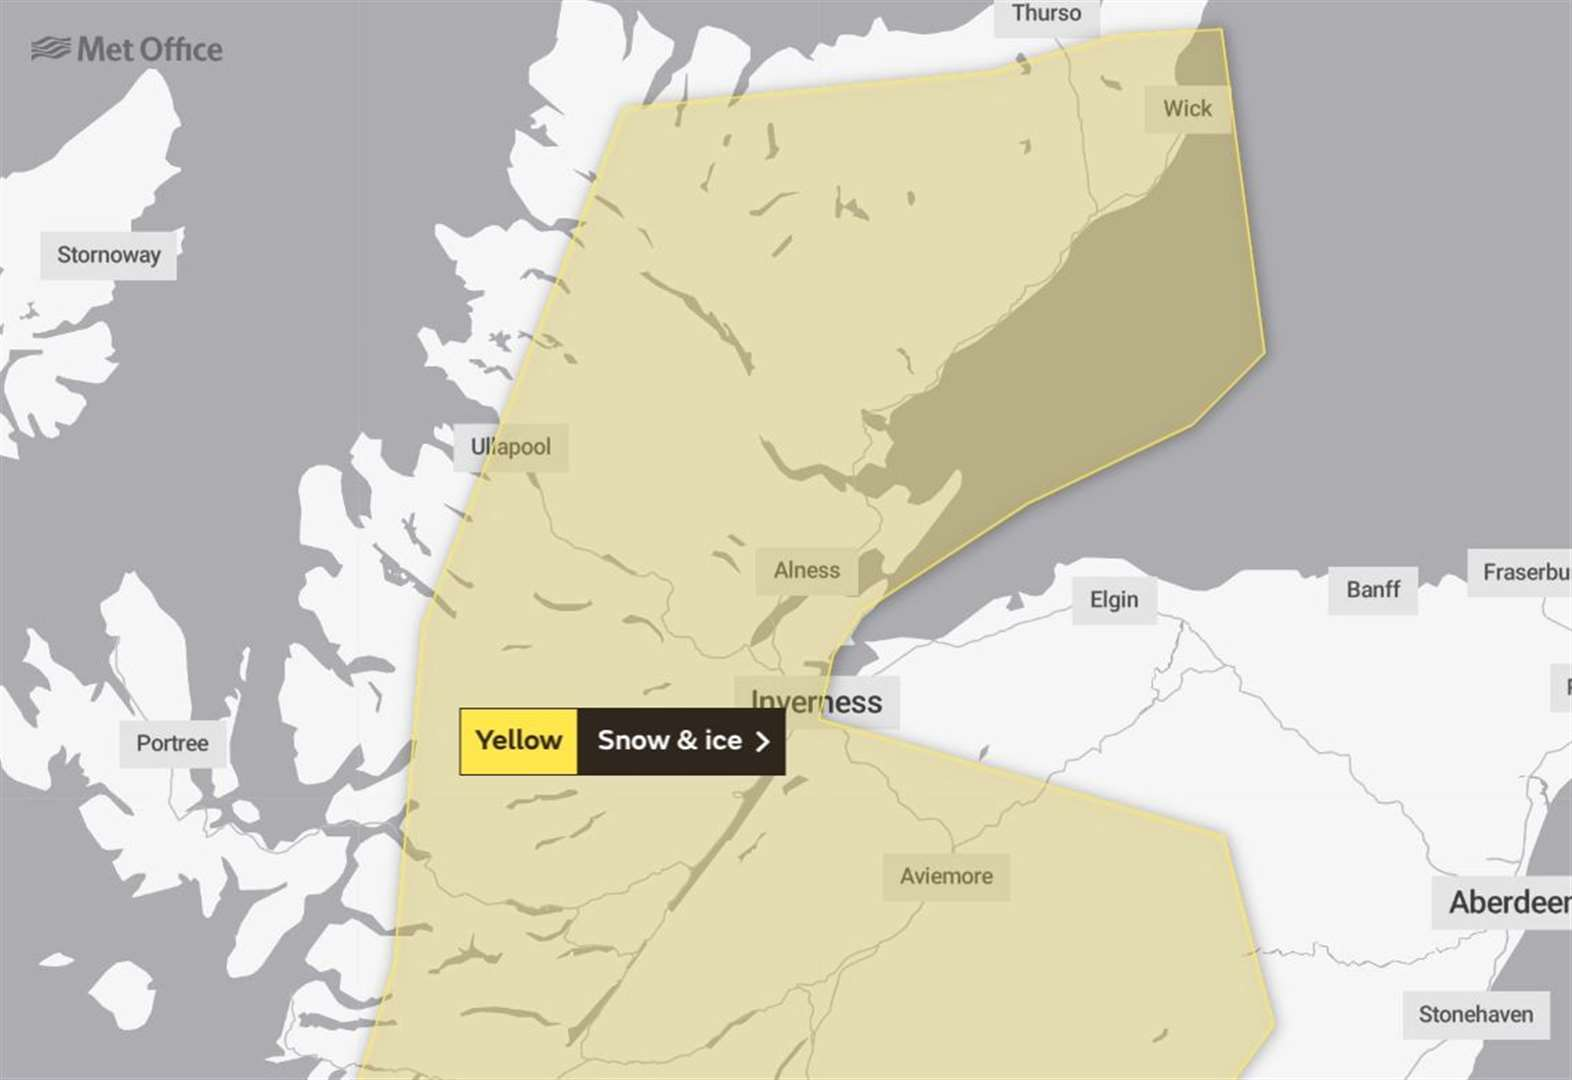 Highlands braced for snow and ice